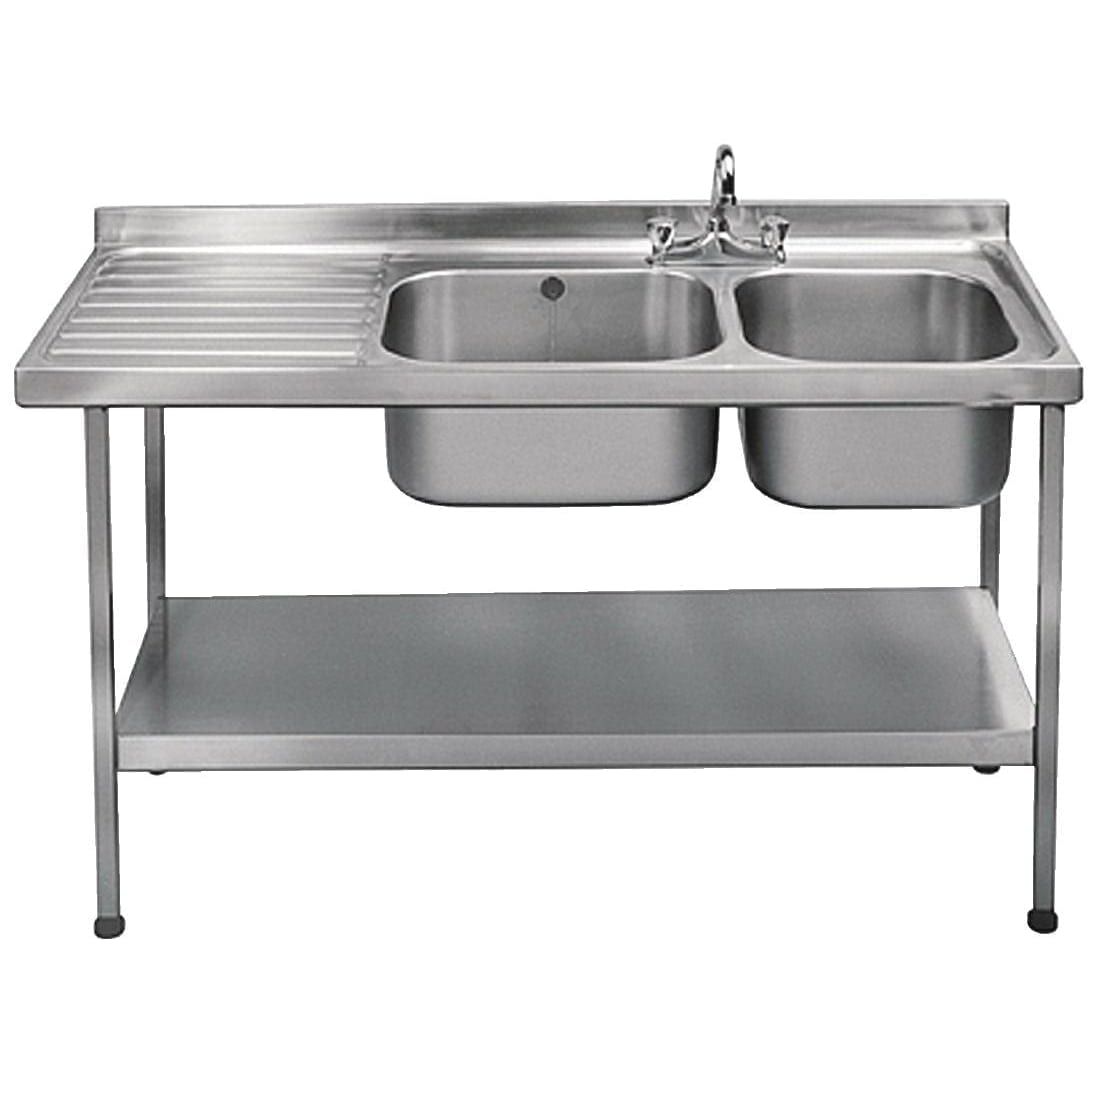 Sissons S/S Sink 1500x600mm Dble R/H Bwl inc taps L/H Drainer Mini Range(Direct)-0